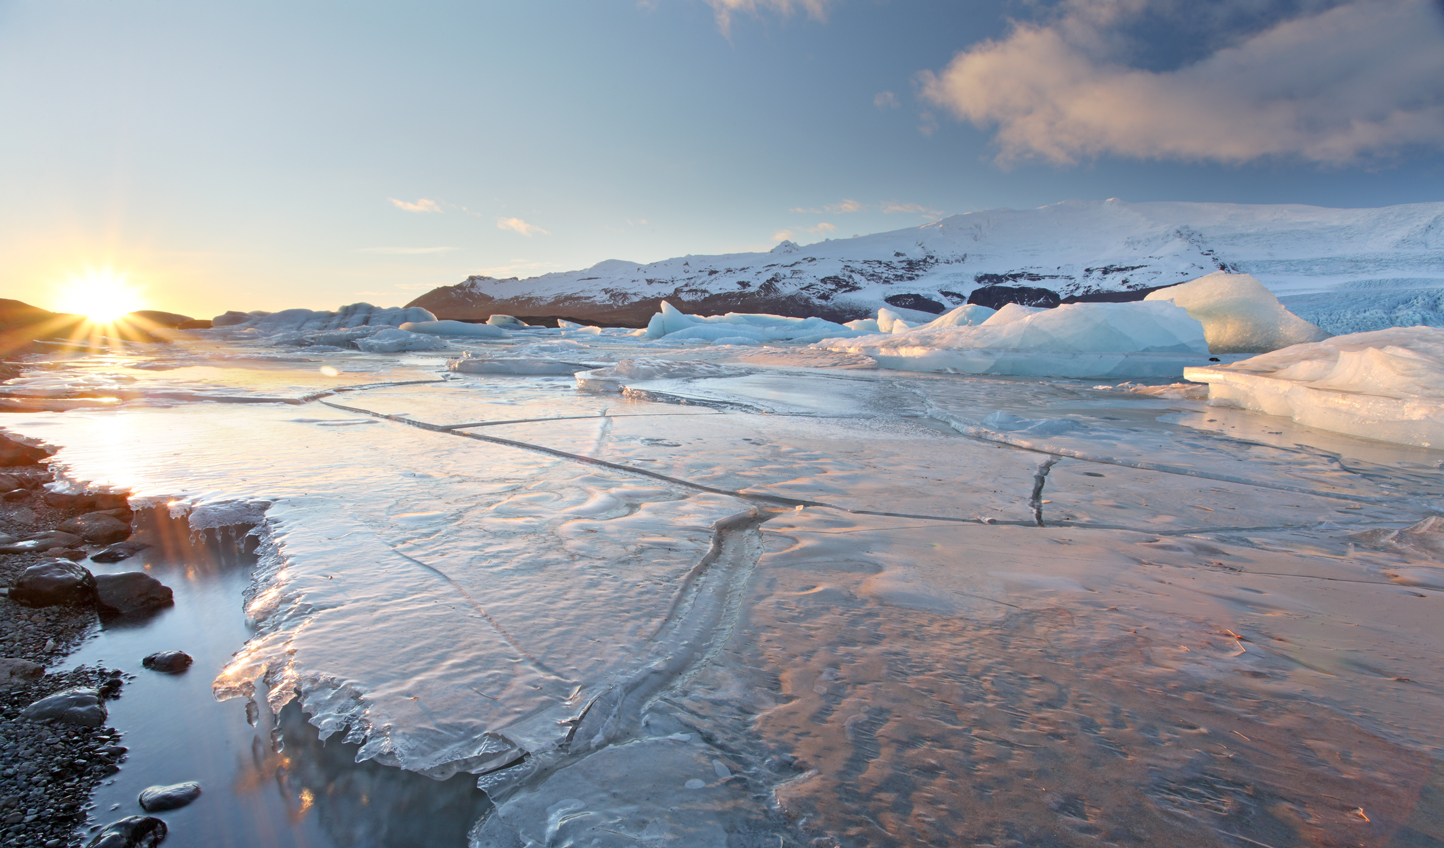 Strap on your crampons; welcome to Iceland